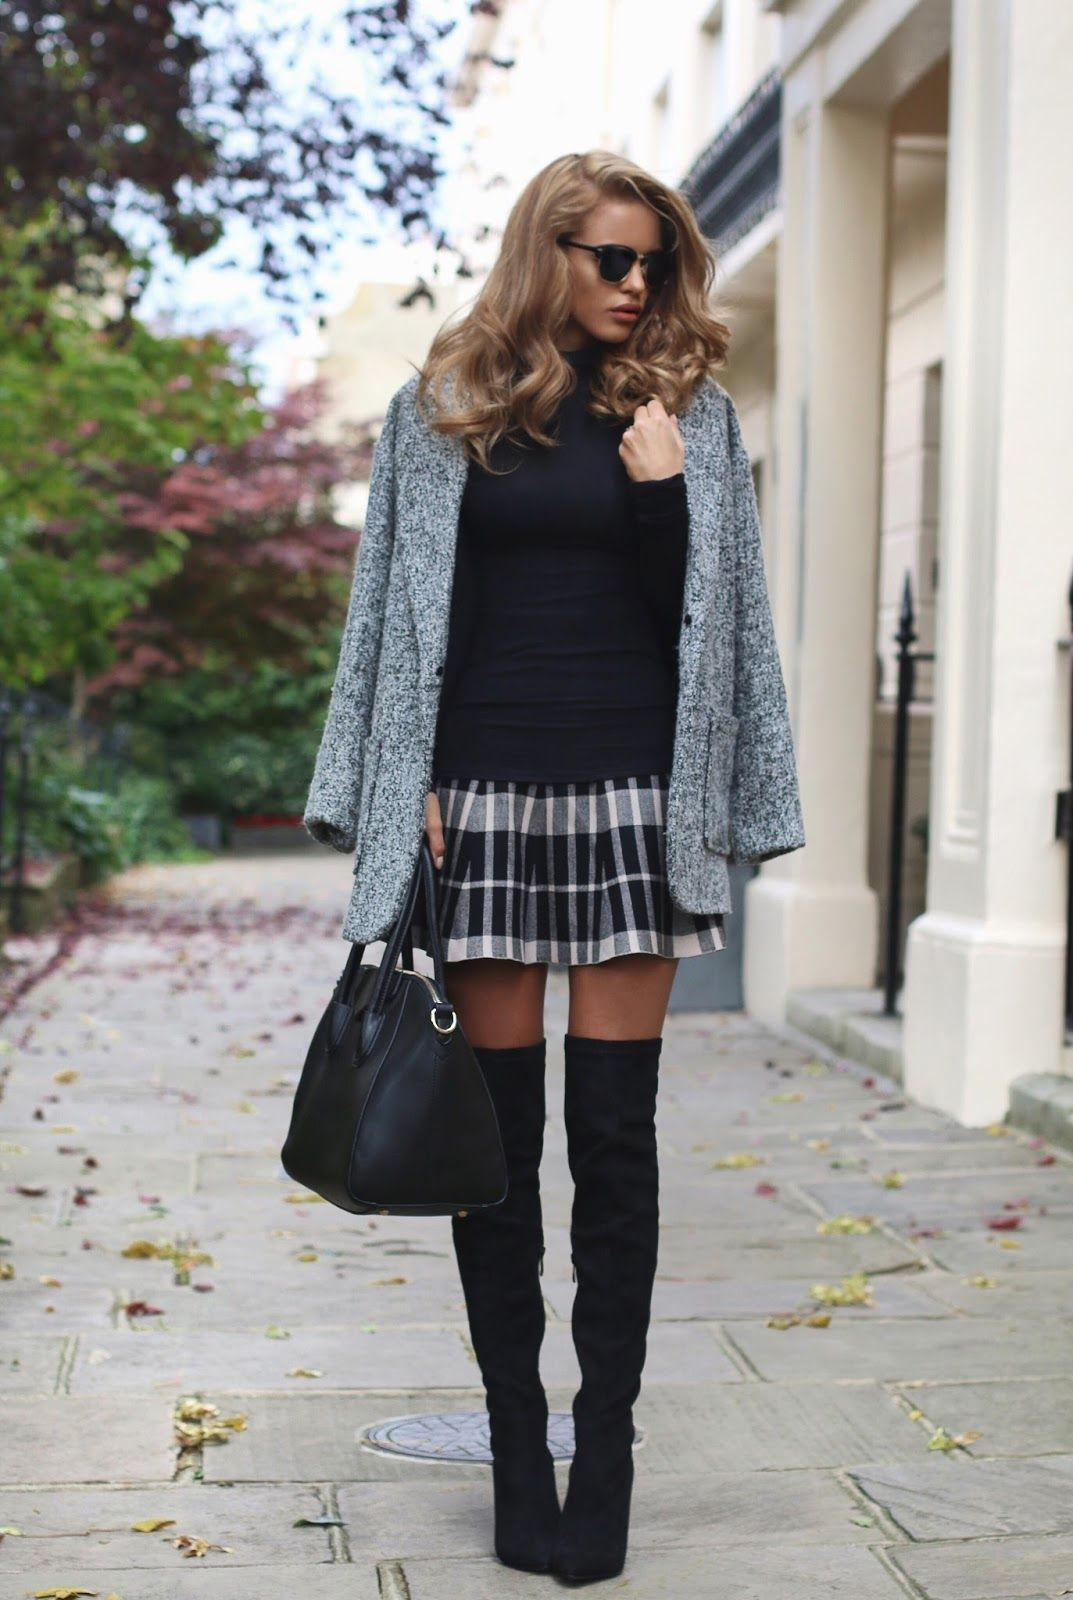 961758a27ca Nada Adelle wears patent over the knee boots with a cute tartan mini skirt  and a grey boyfriend coat. Coat  Glamorous